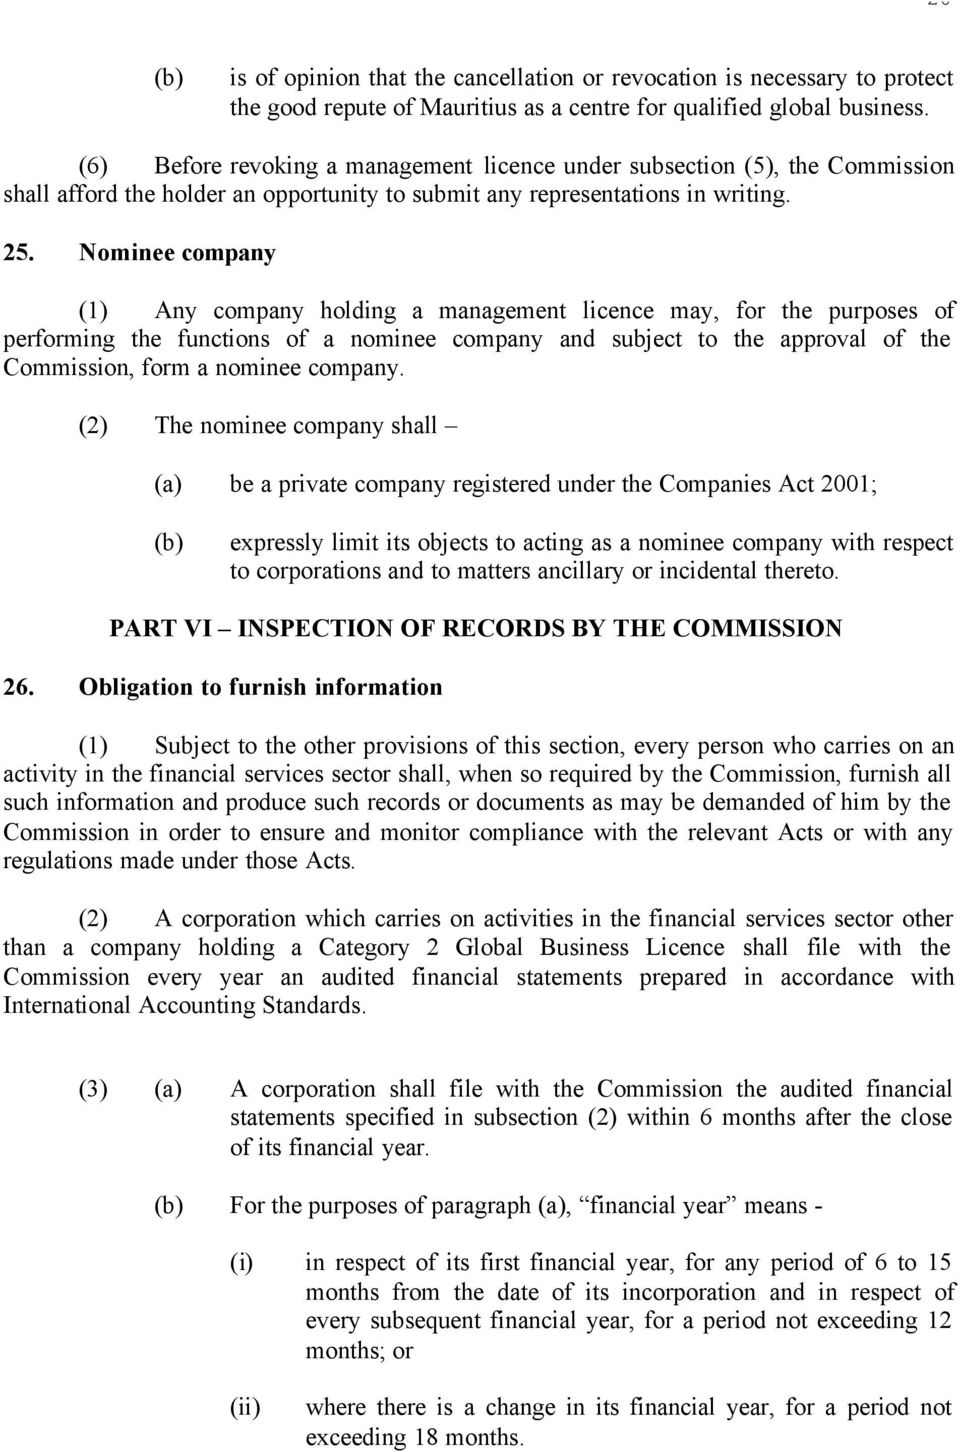 Nominee company (1) Any company holding a management licence may, for the purposes of performing the functions of a nominee company and subject to the approval of the Commission, form a nominee